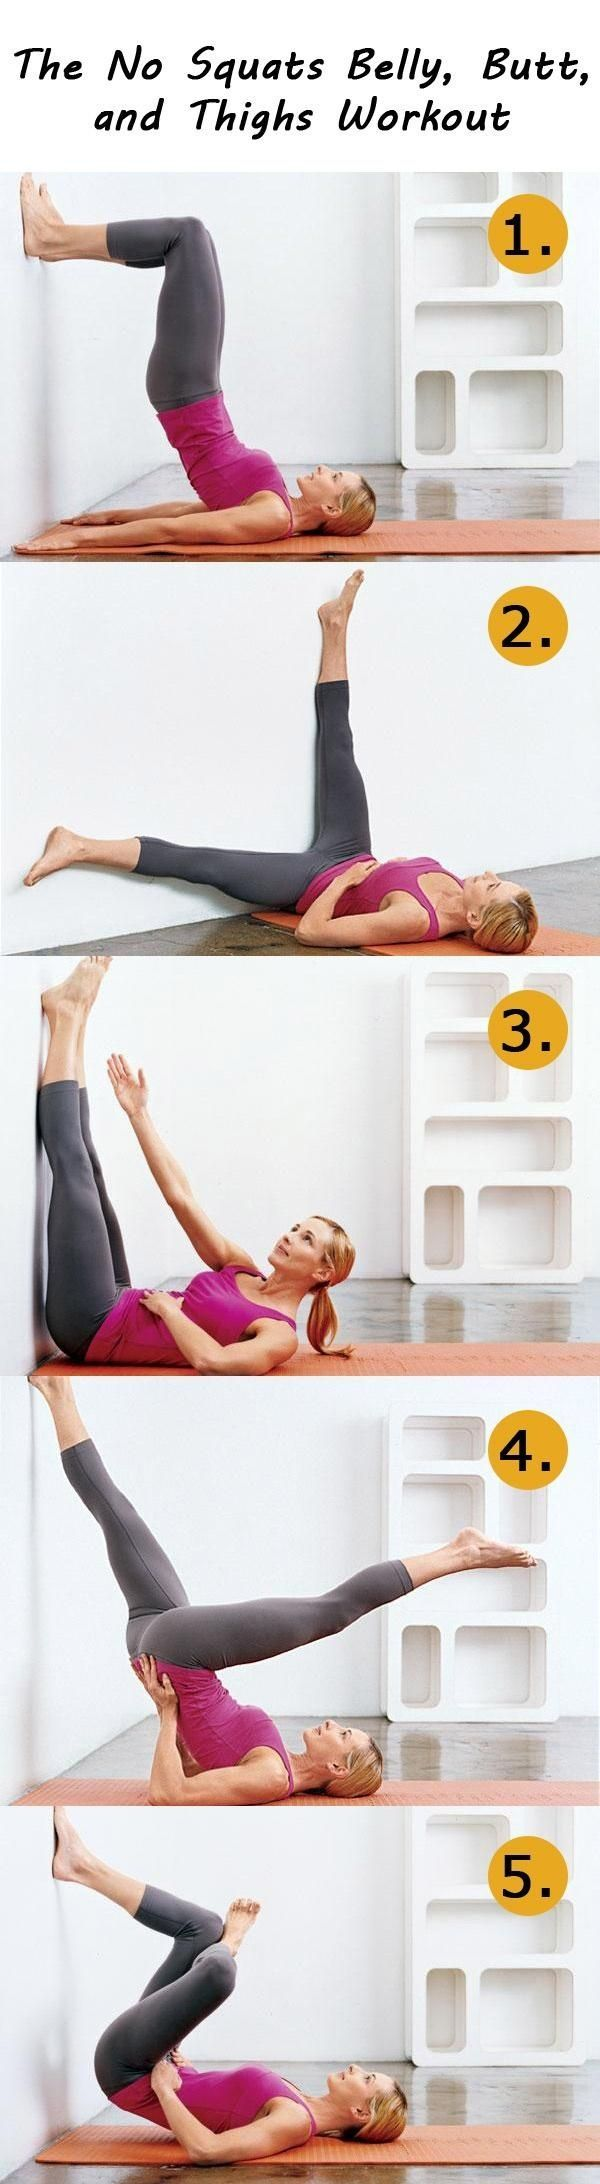 flatten your belly, slim your thighs, and firm your butt